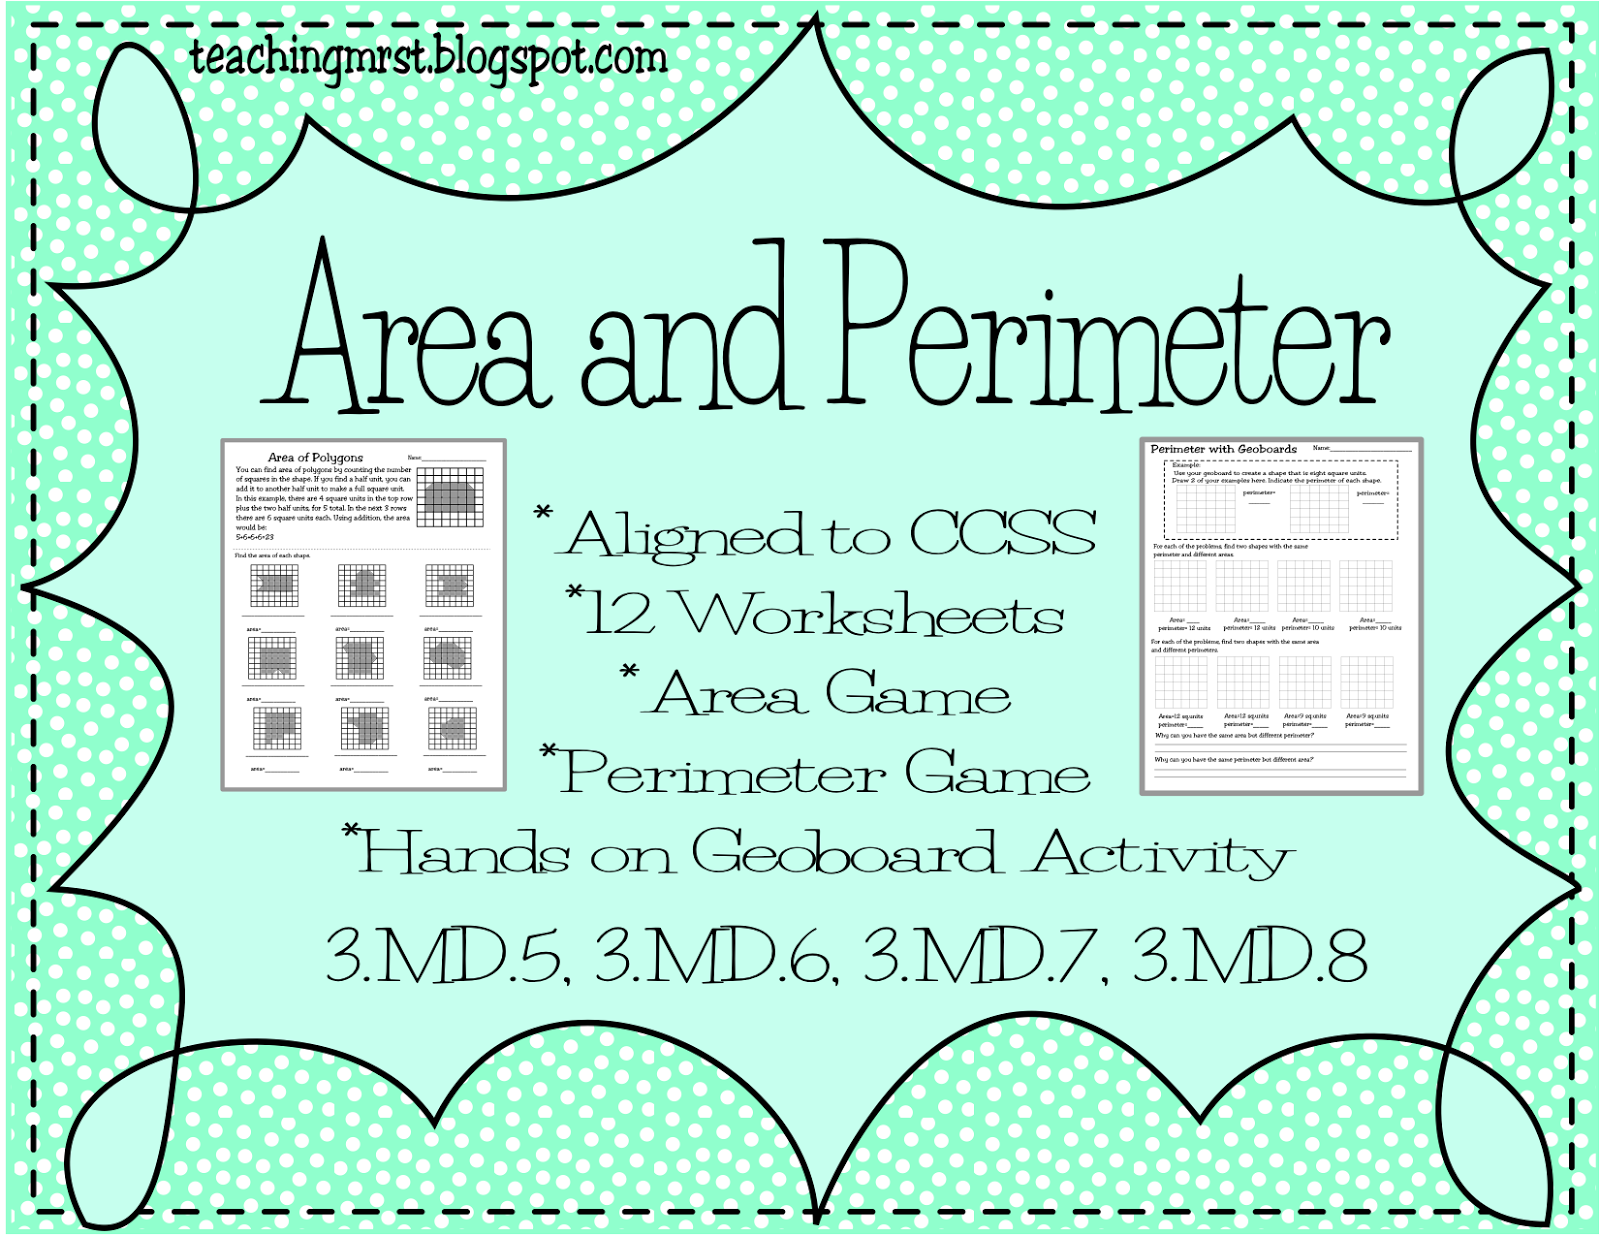 worksheet Area And Perimeter Worksheets 3rd Grade 3rd grade area and perimeter worksheets abitlikethis worksheets